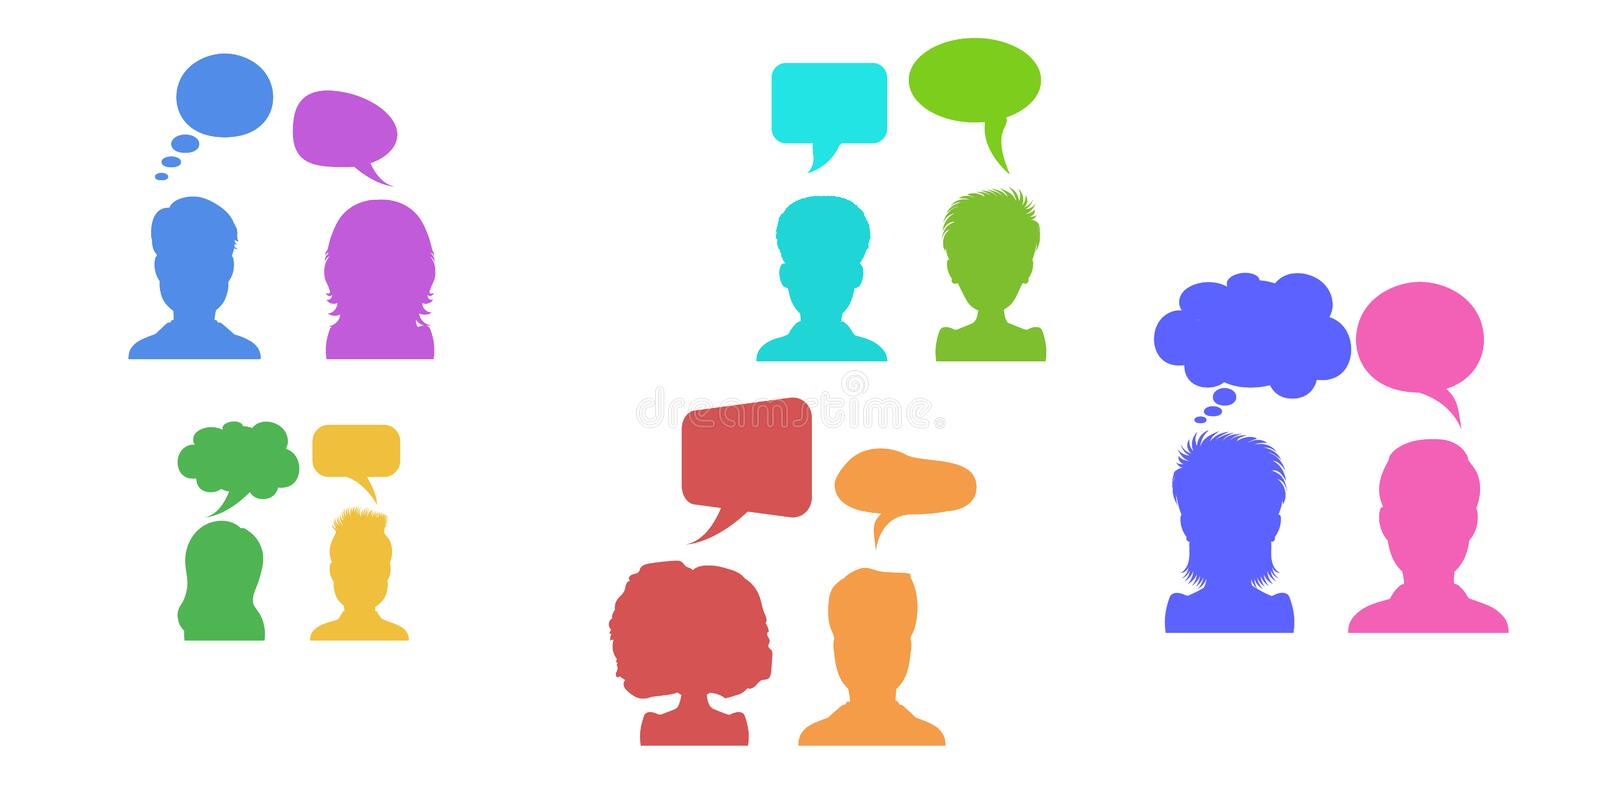 Vector illustration in flat style, businessmen discussion in social media networks, people chatting dialogue with speech bubbles. vector illustration